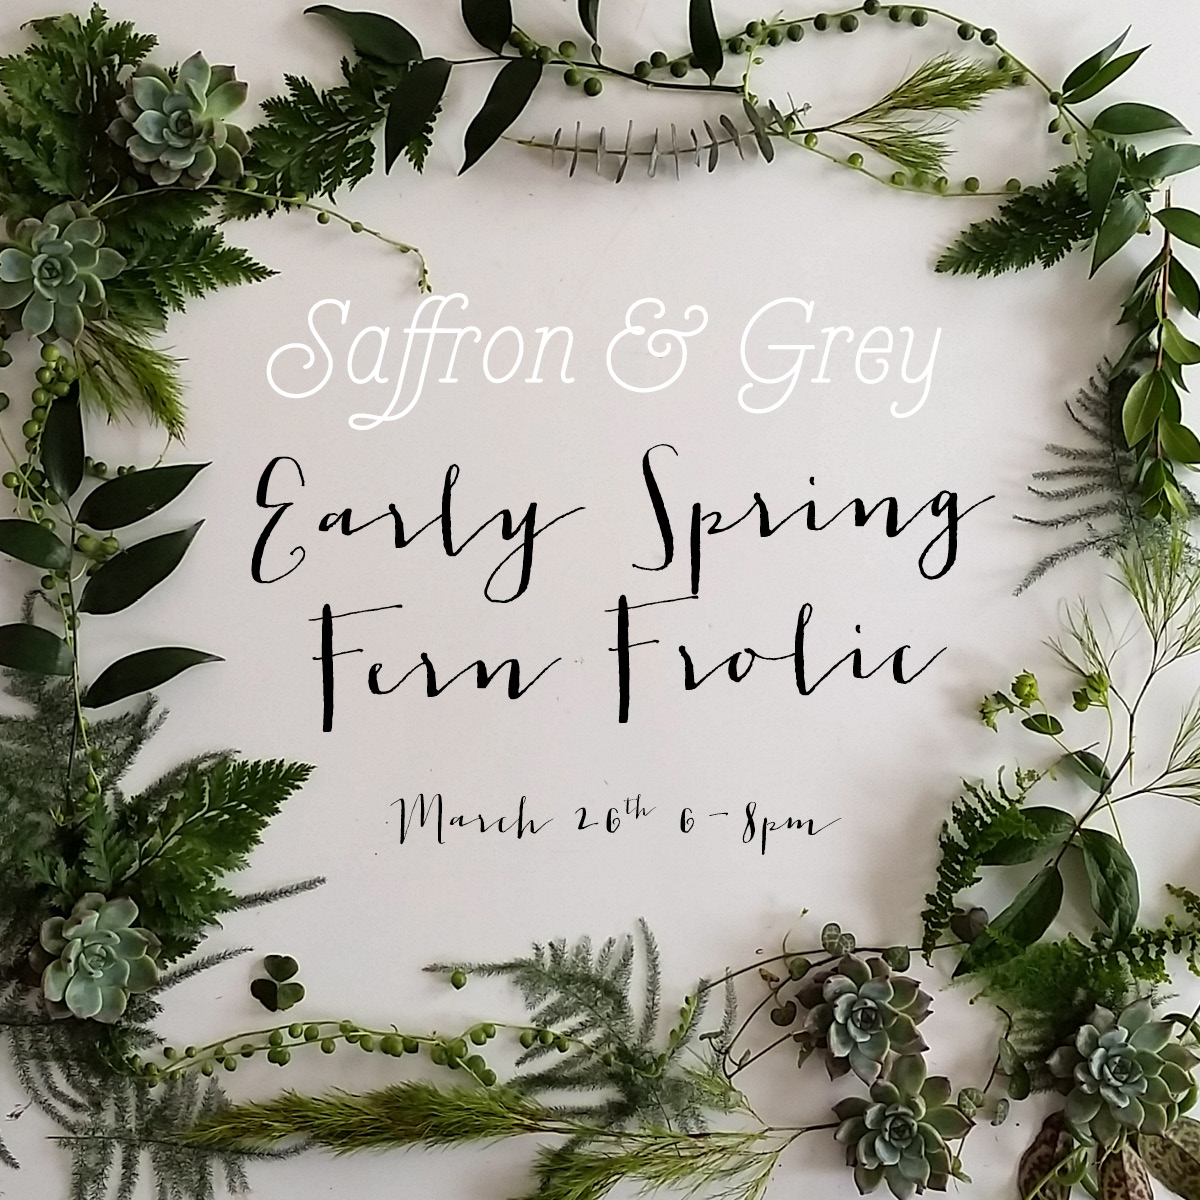 Cabin fever? We've got the cure! Join us on Thursday, March 26 from 6-8pm for an exclusive first look at our newly-remodeled design studio & classroom space. We'll have a chlorophyll-filed plant pop-up shop featuring trailing jungle vines, proud & prickly cacti, luscious ferns, & lots more! BONUS- don't miss our cool yet informative practical plant demonstrations, quaffable beverages & snacks galore! Get ready, it's about to get Garden of Eden up in here!